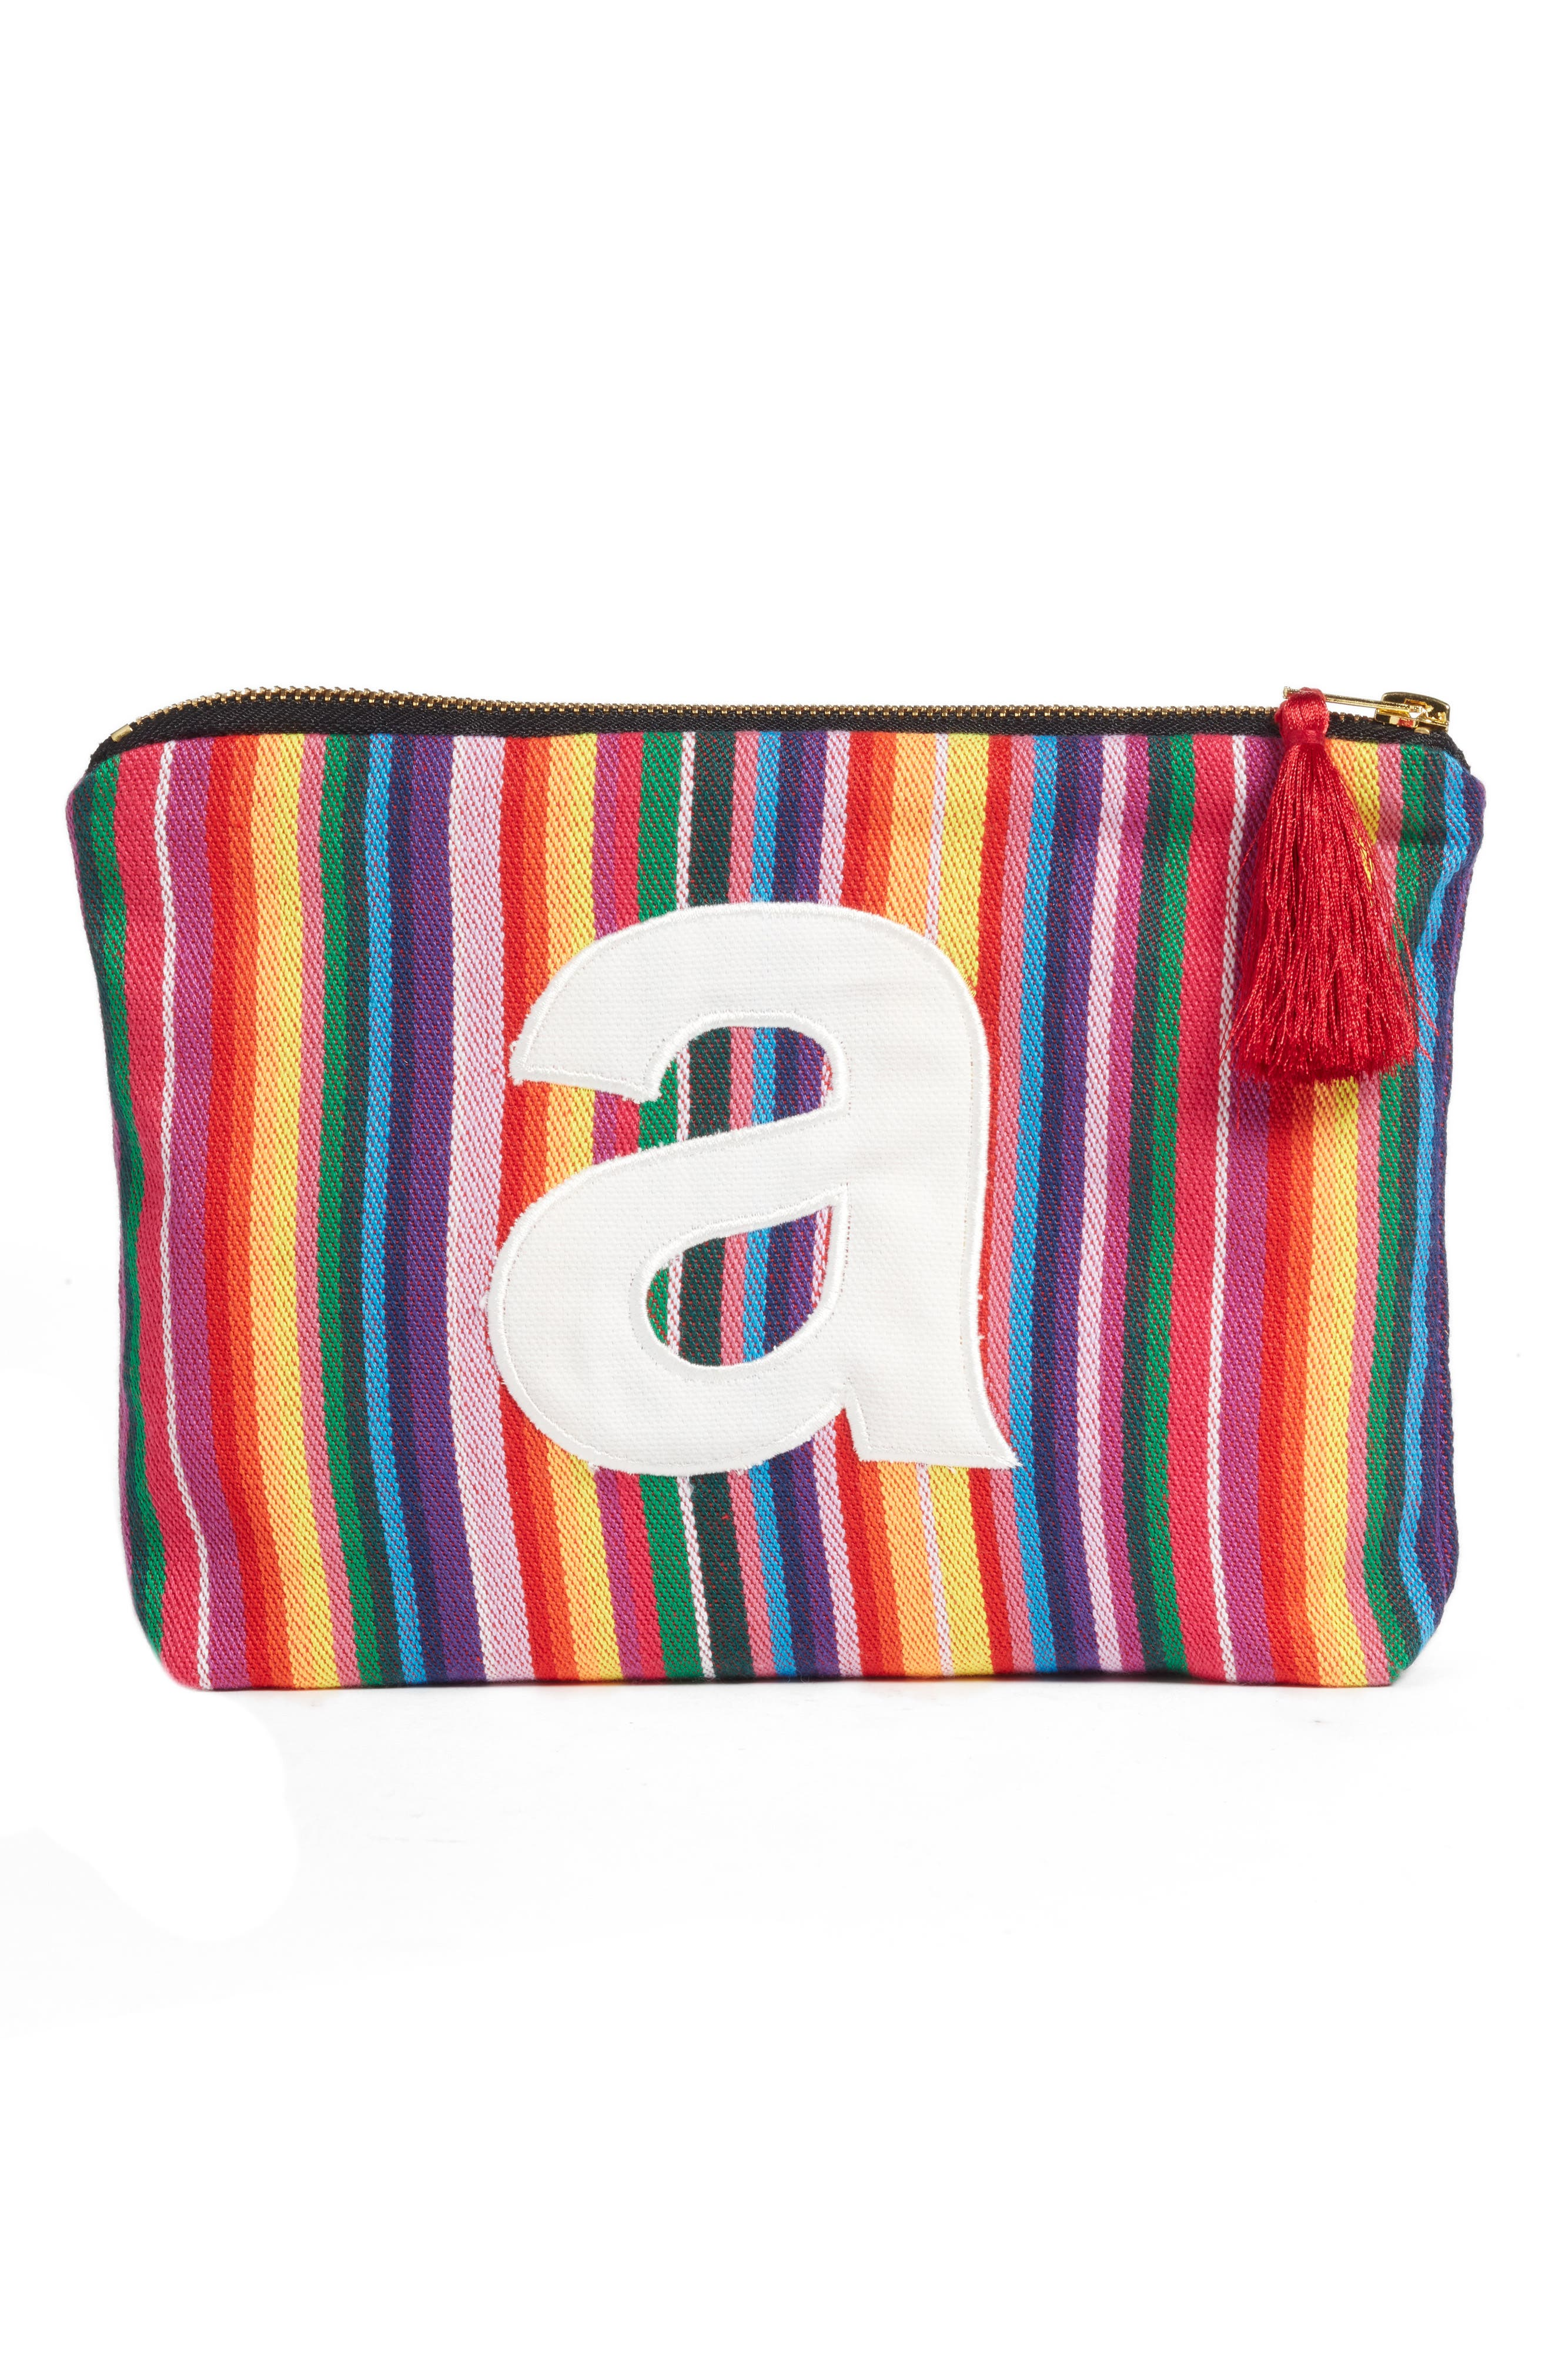 Cabo Initial Zip Pouch,                             Main thumbnail 1, color,                             600